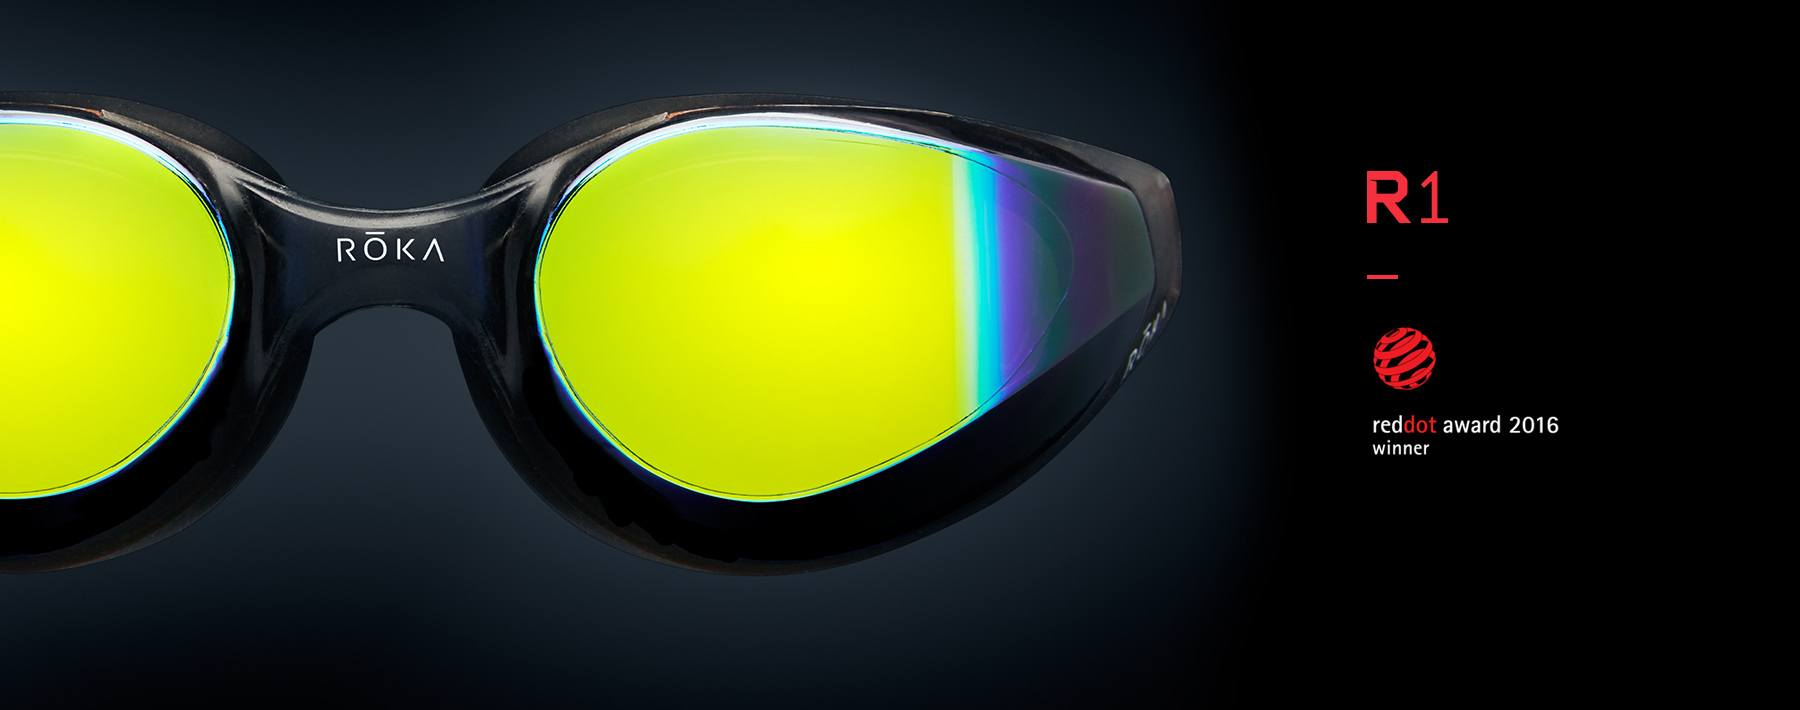 ROKA wins Red Dot Award for Product Design of their R1 goggle